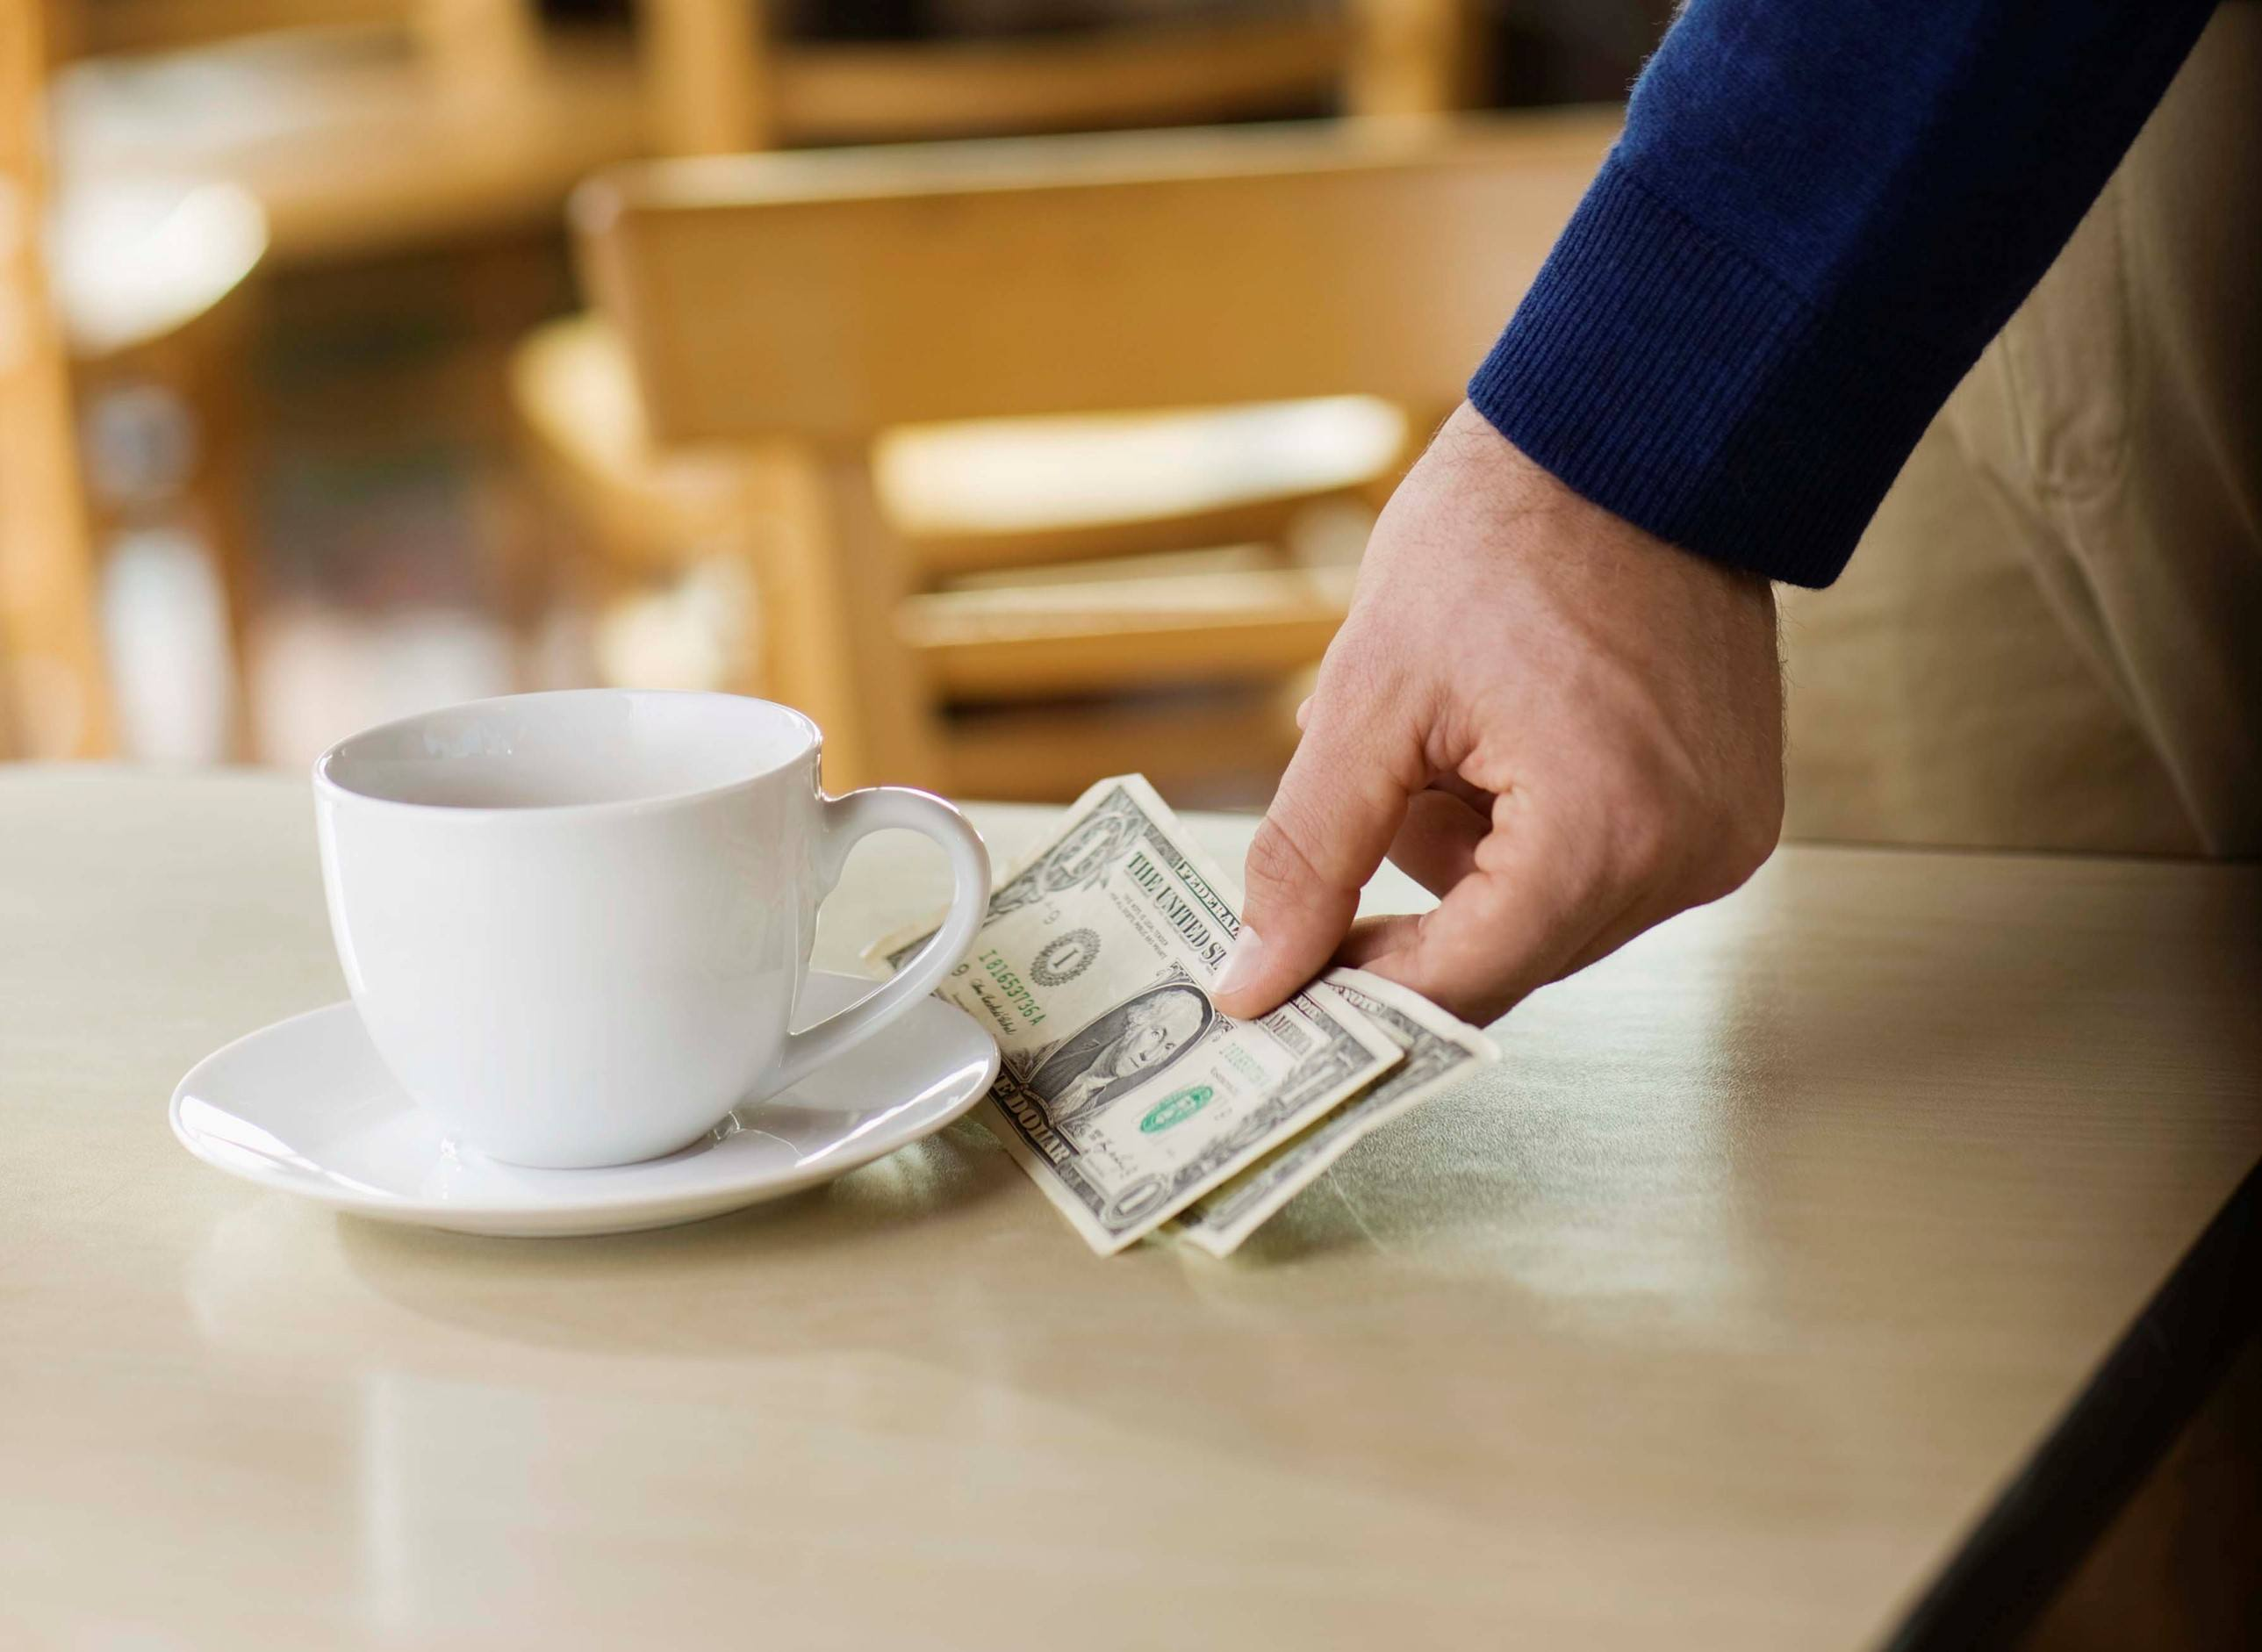 Man leaving tip on table at cafe